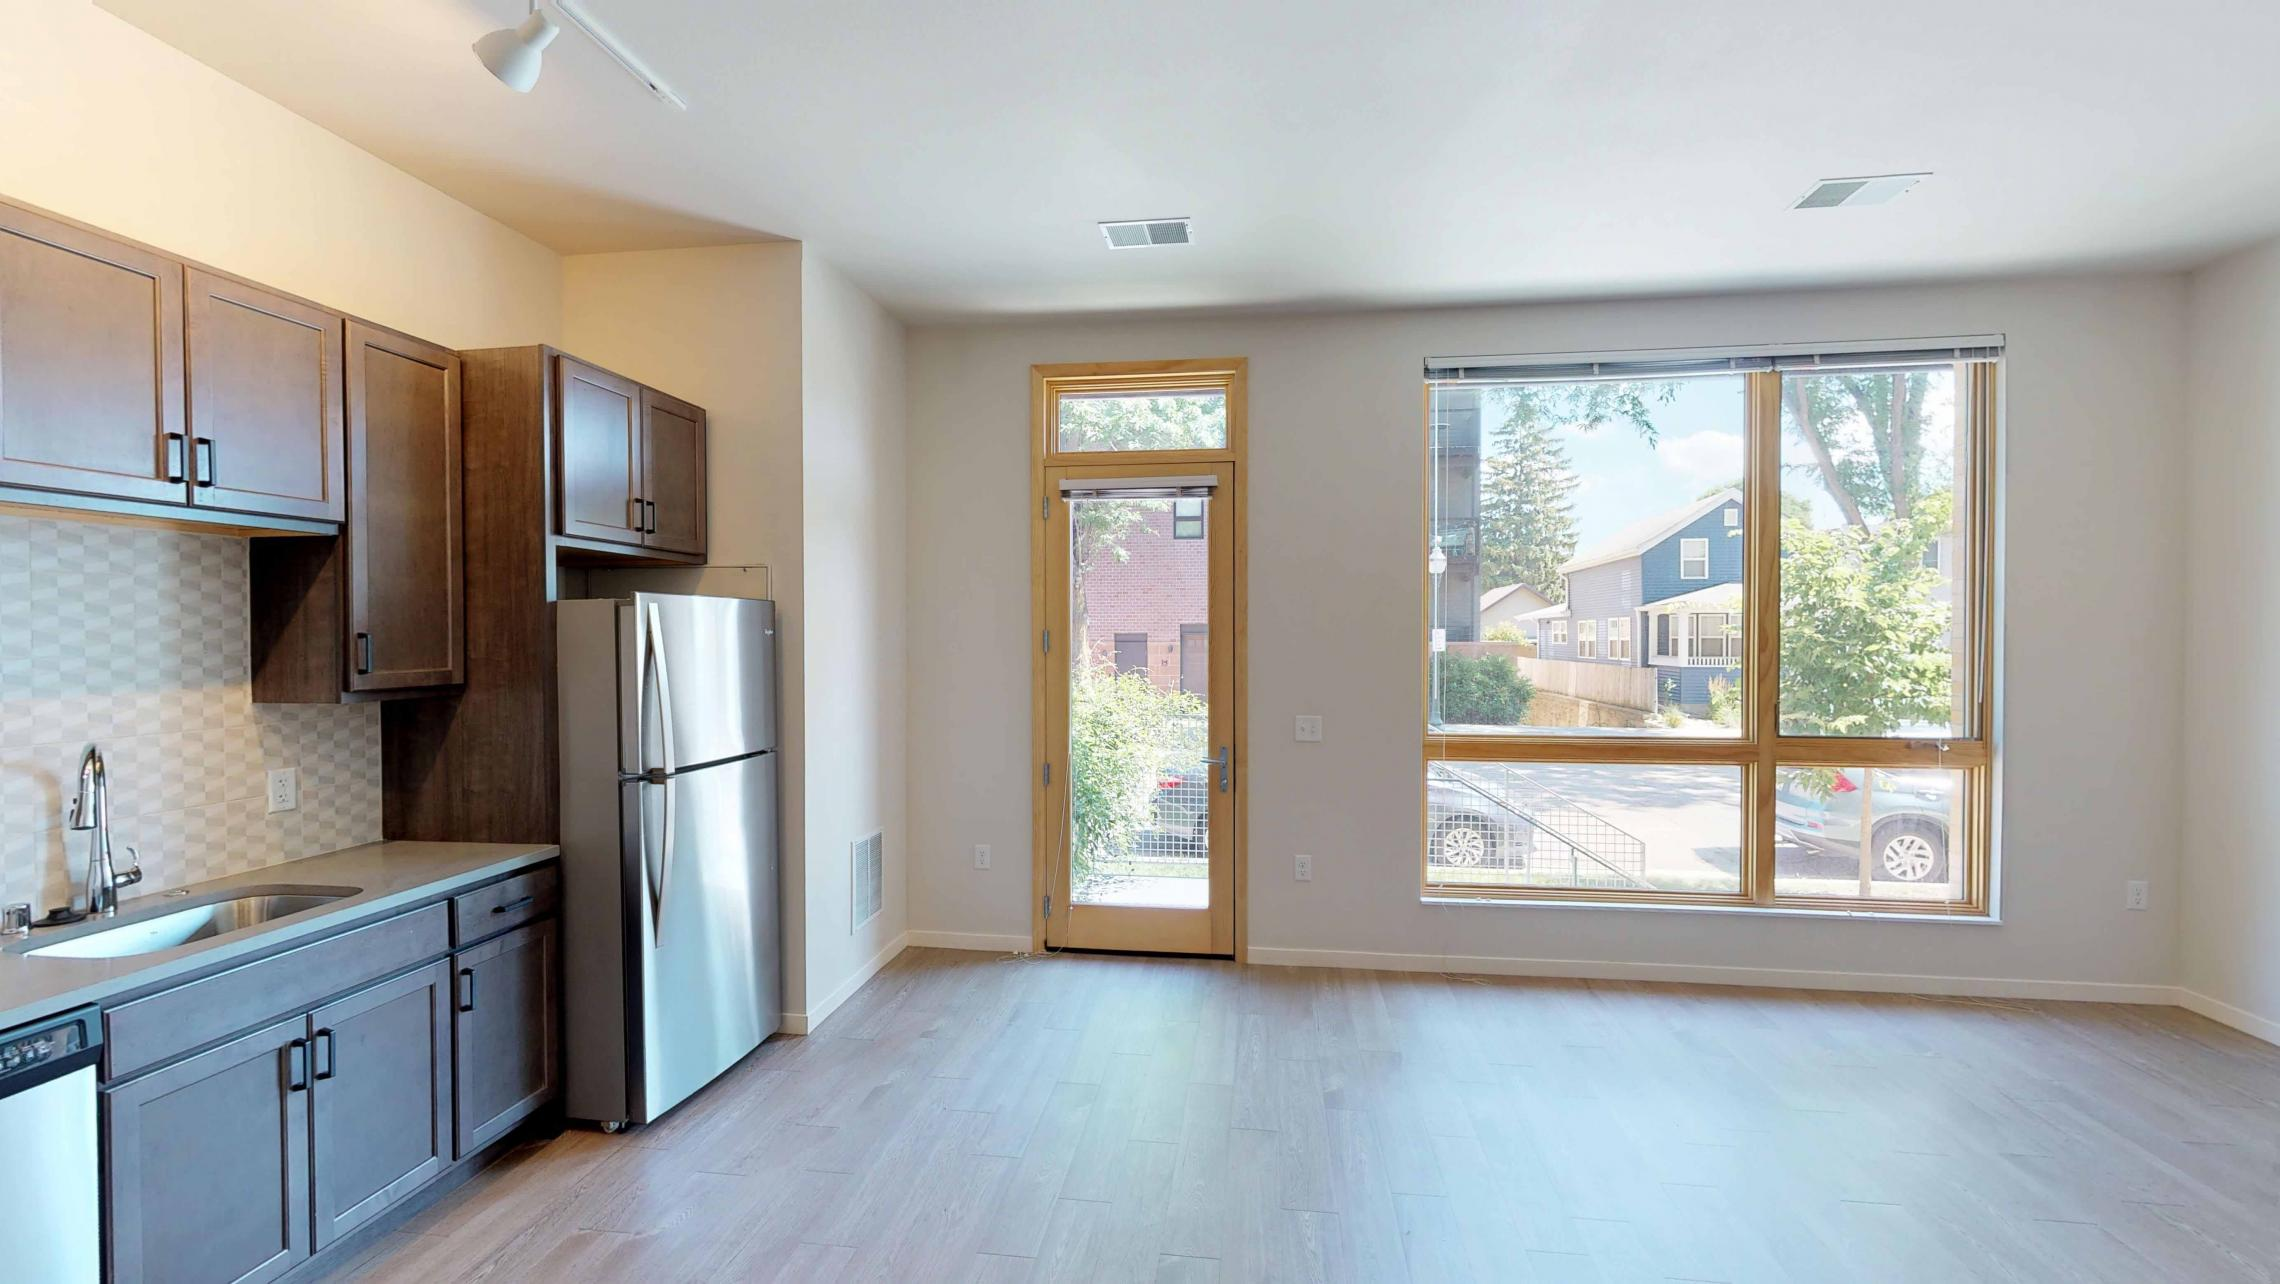 Quarter-Row-Yards-Apartment-105-One-Bedroom-Modern-Upscale-Fitness-Lounge-Courtyard-Downtown-Madison-Balcony-Amenities-Luxury